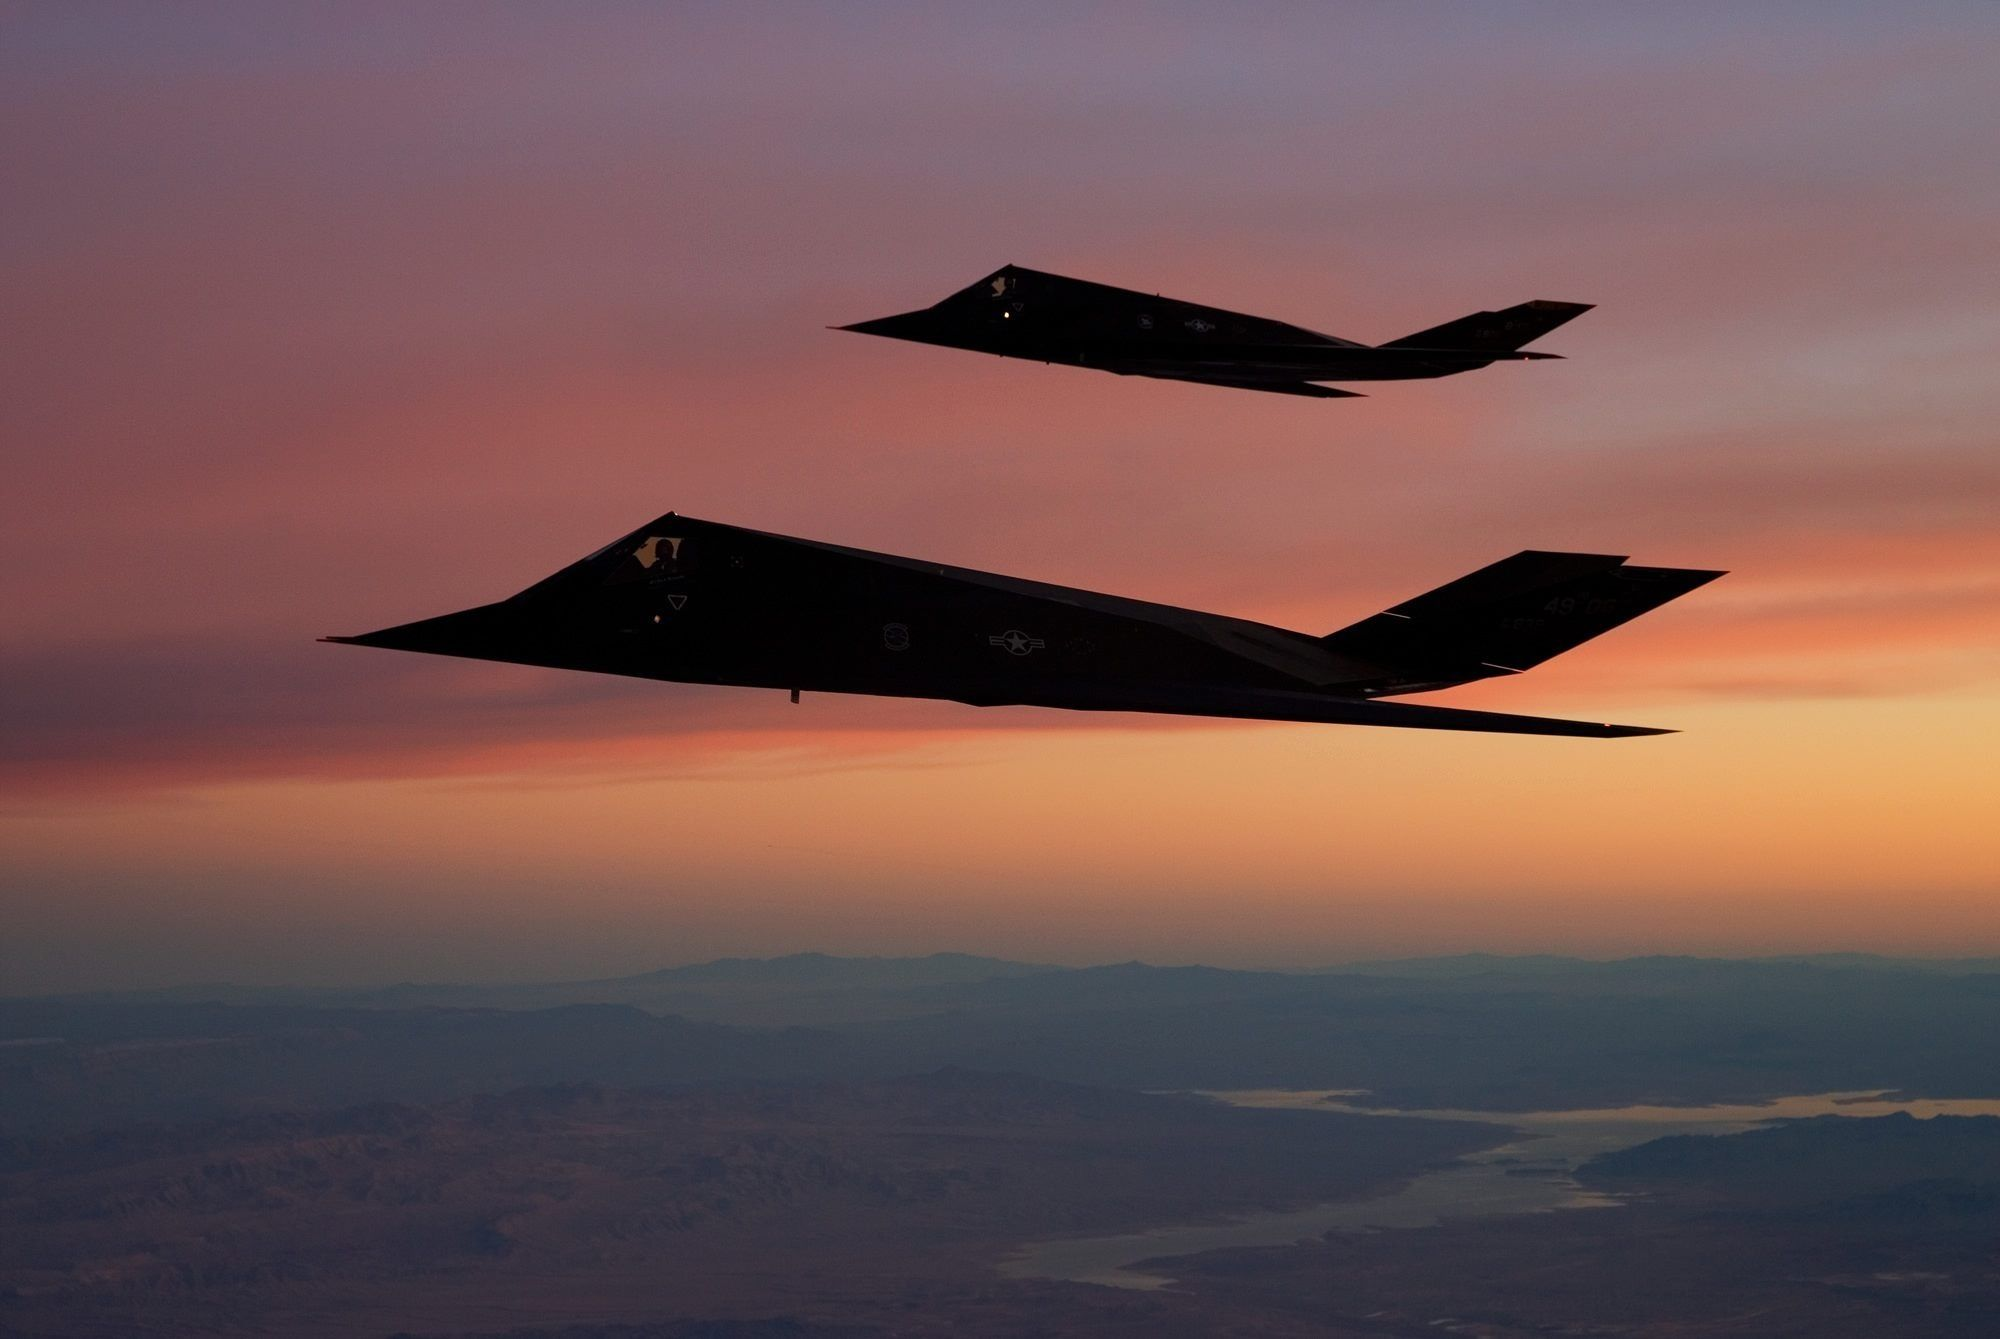 Sunset with F117s